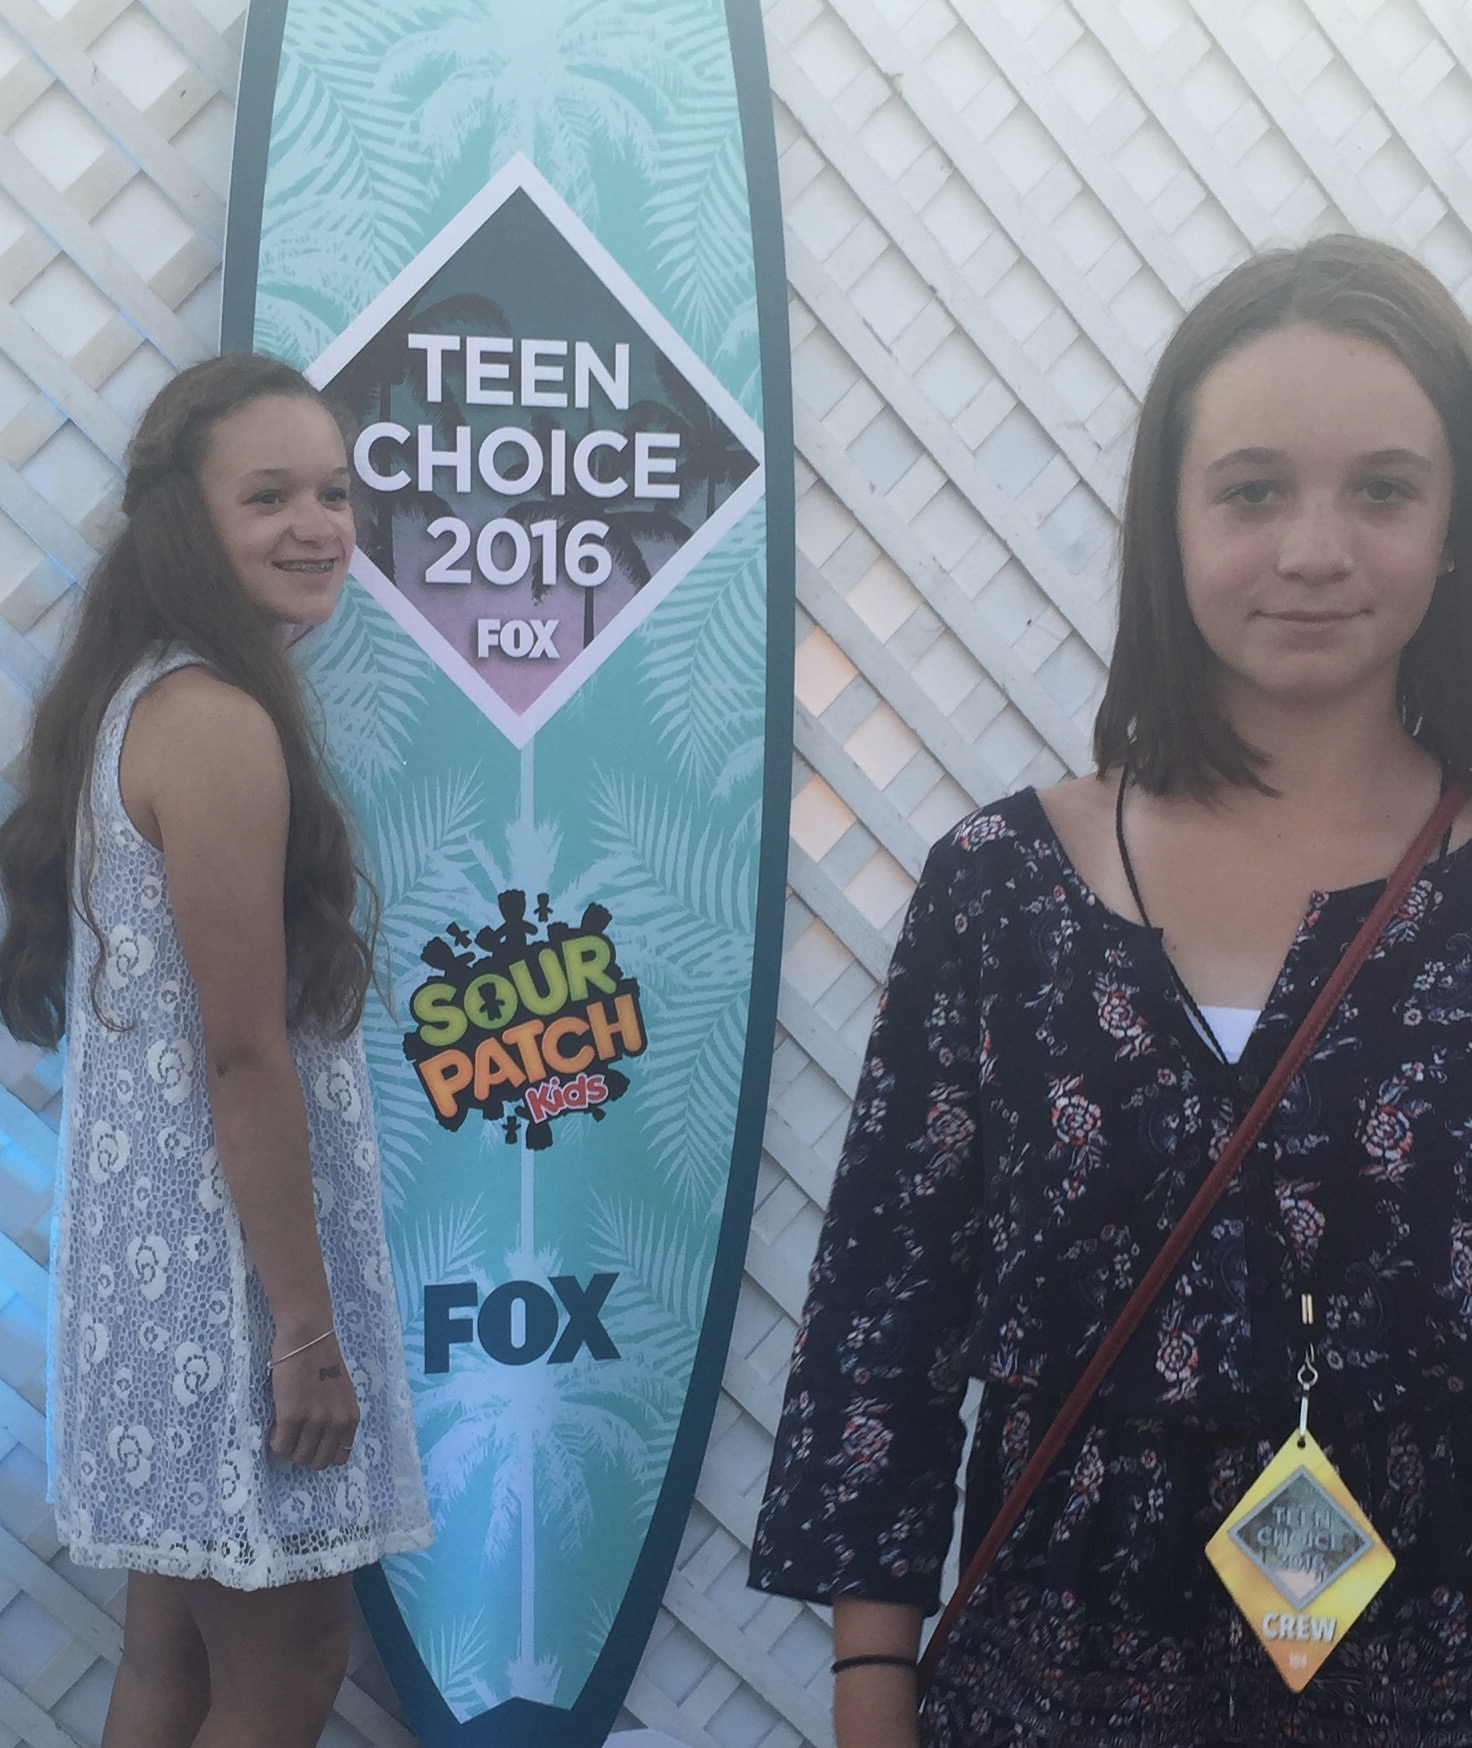 Teen Choice Awards 2016!